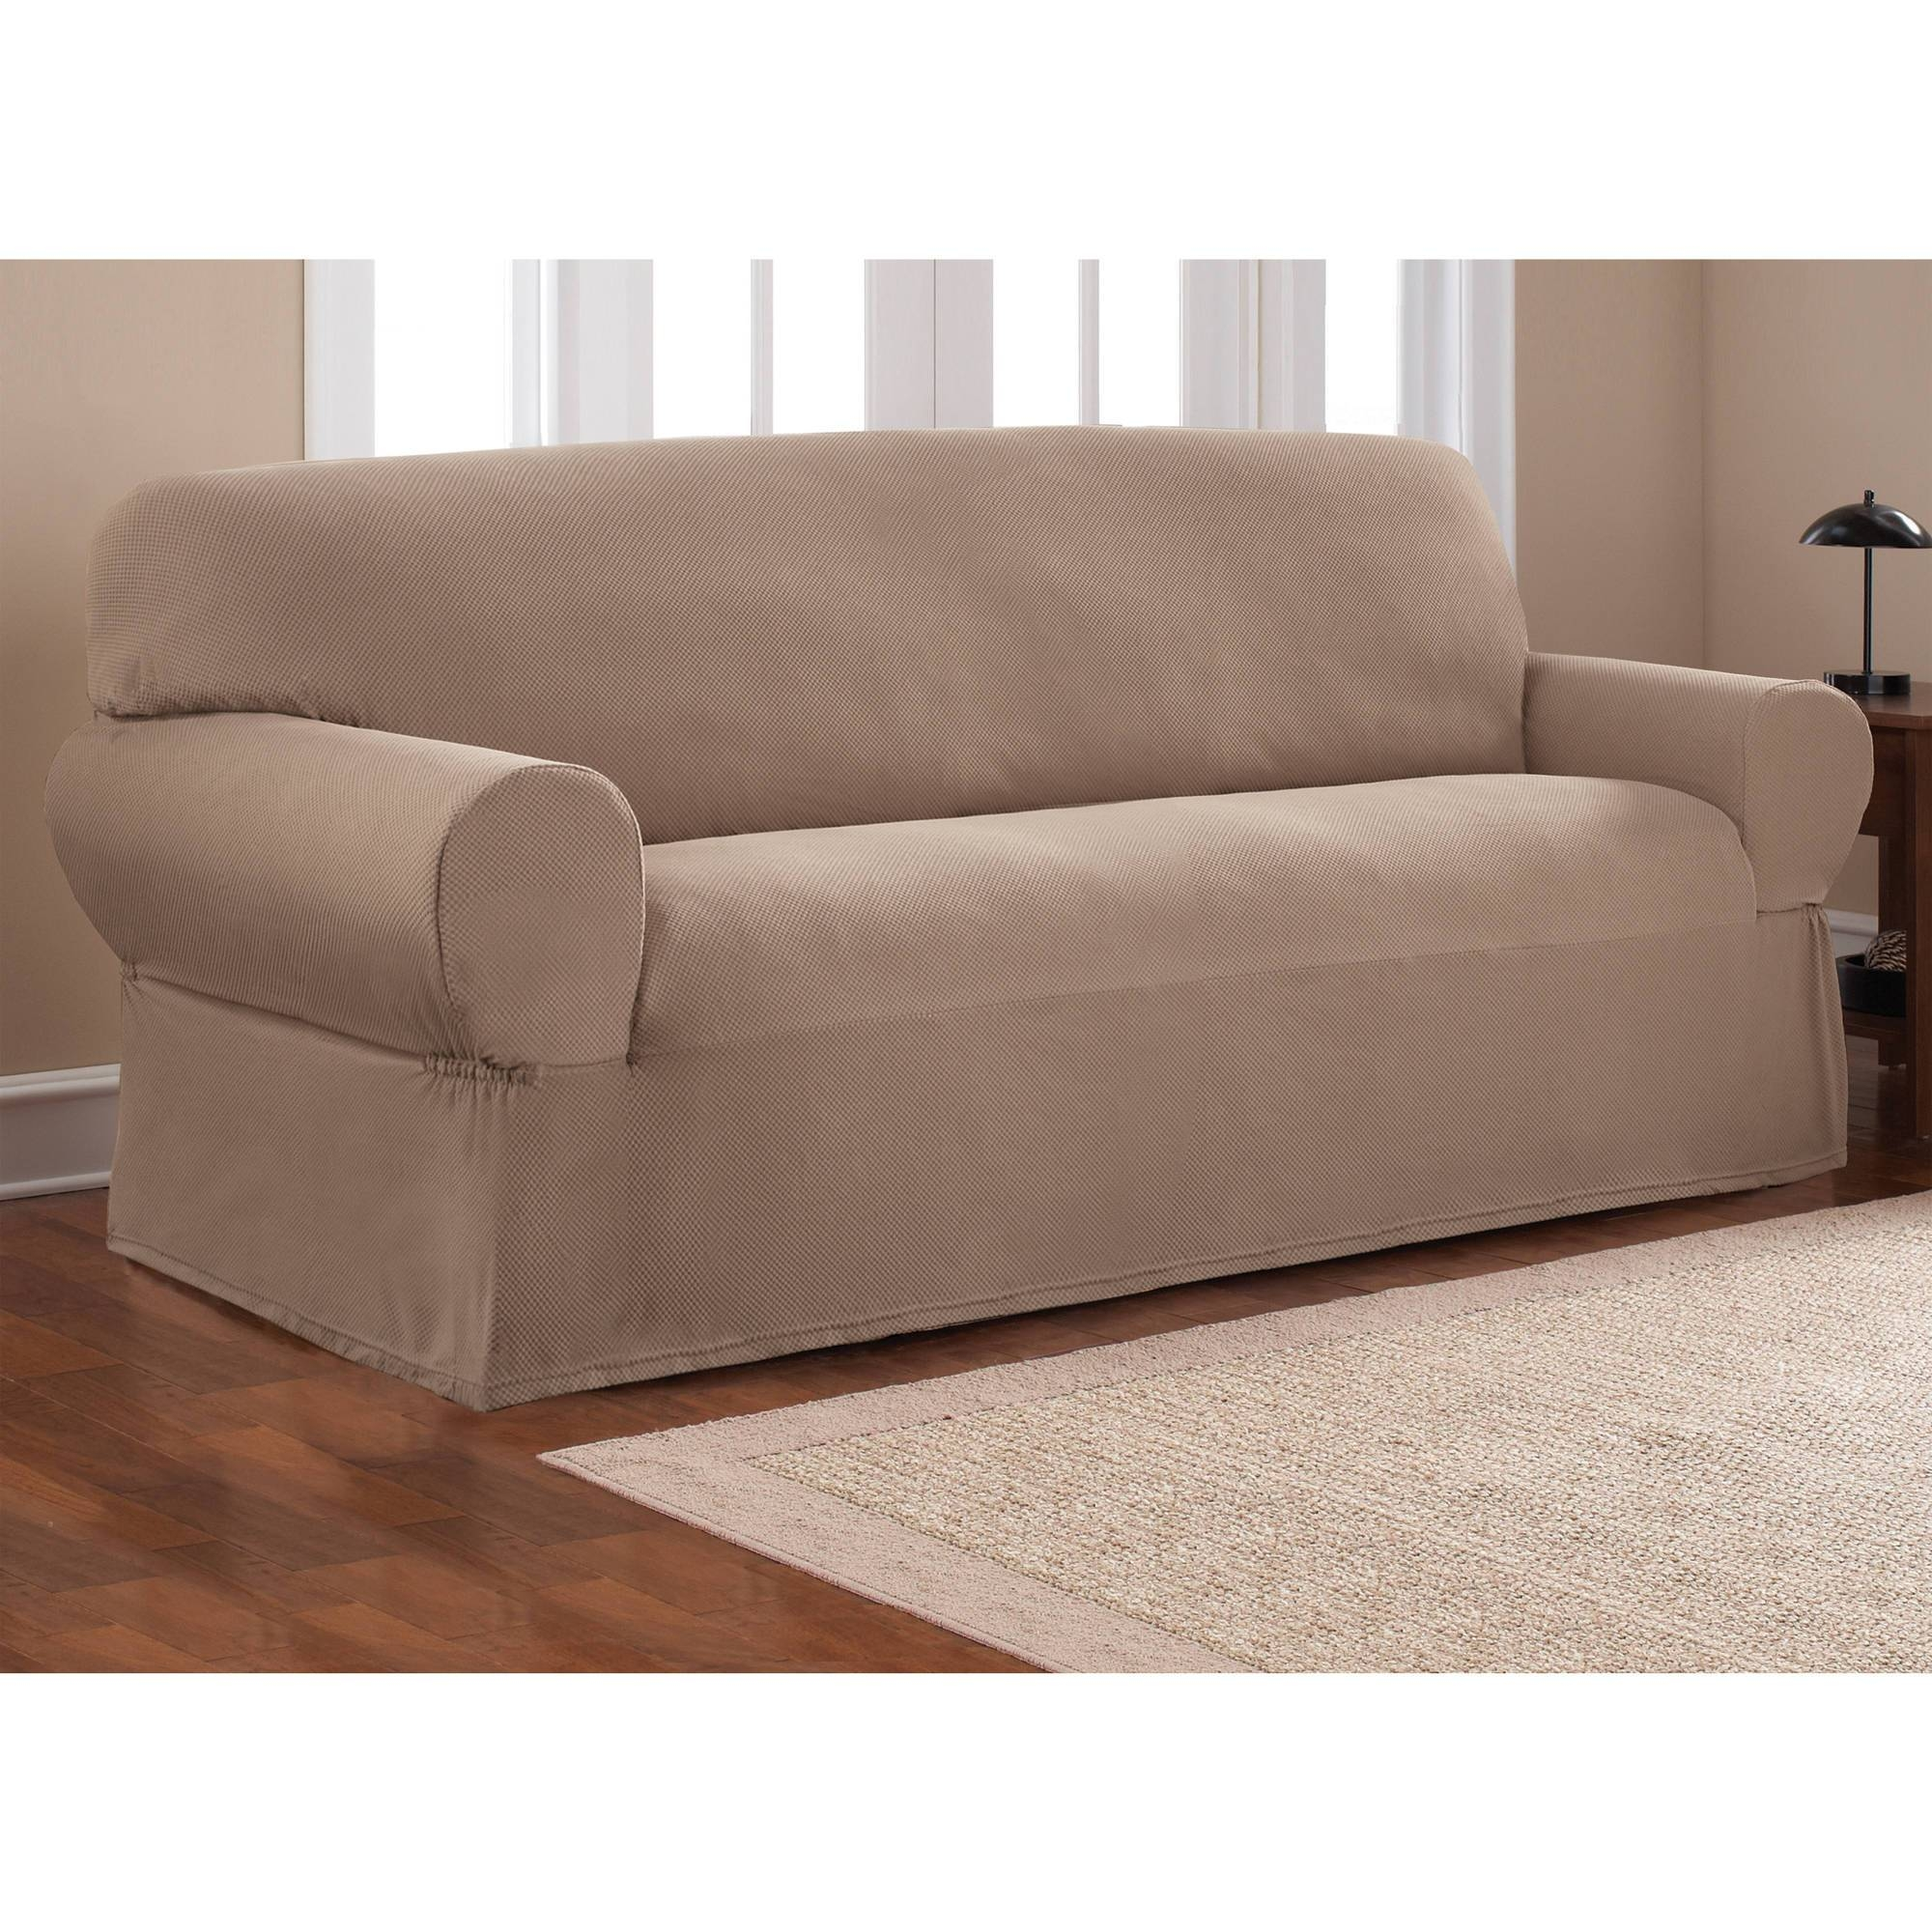 Furniture: Wonderful Walmart Couch Covers Design For Alluring pertaining to 3 Piece Sectional Sofa Slipcovers (Image 13 of 33)